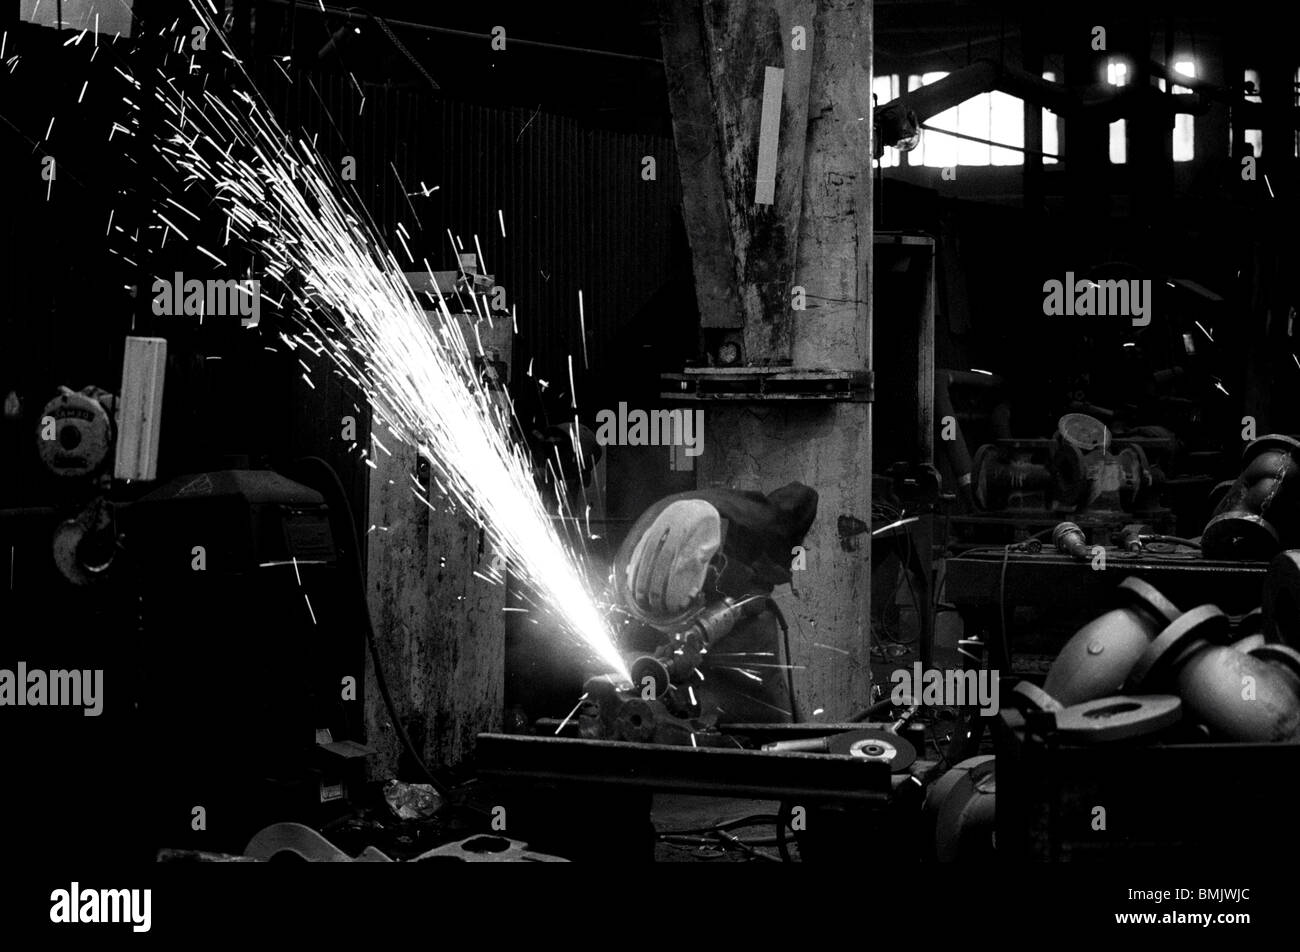 Worker using angle grinder in a Black Country foundry, Wednesfield, West Midlands, England - Stock Image